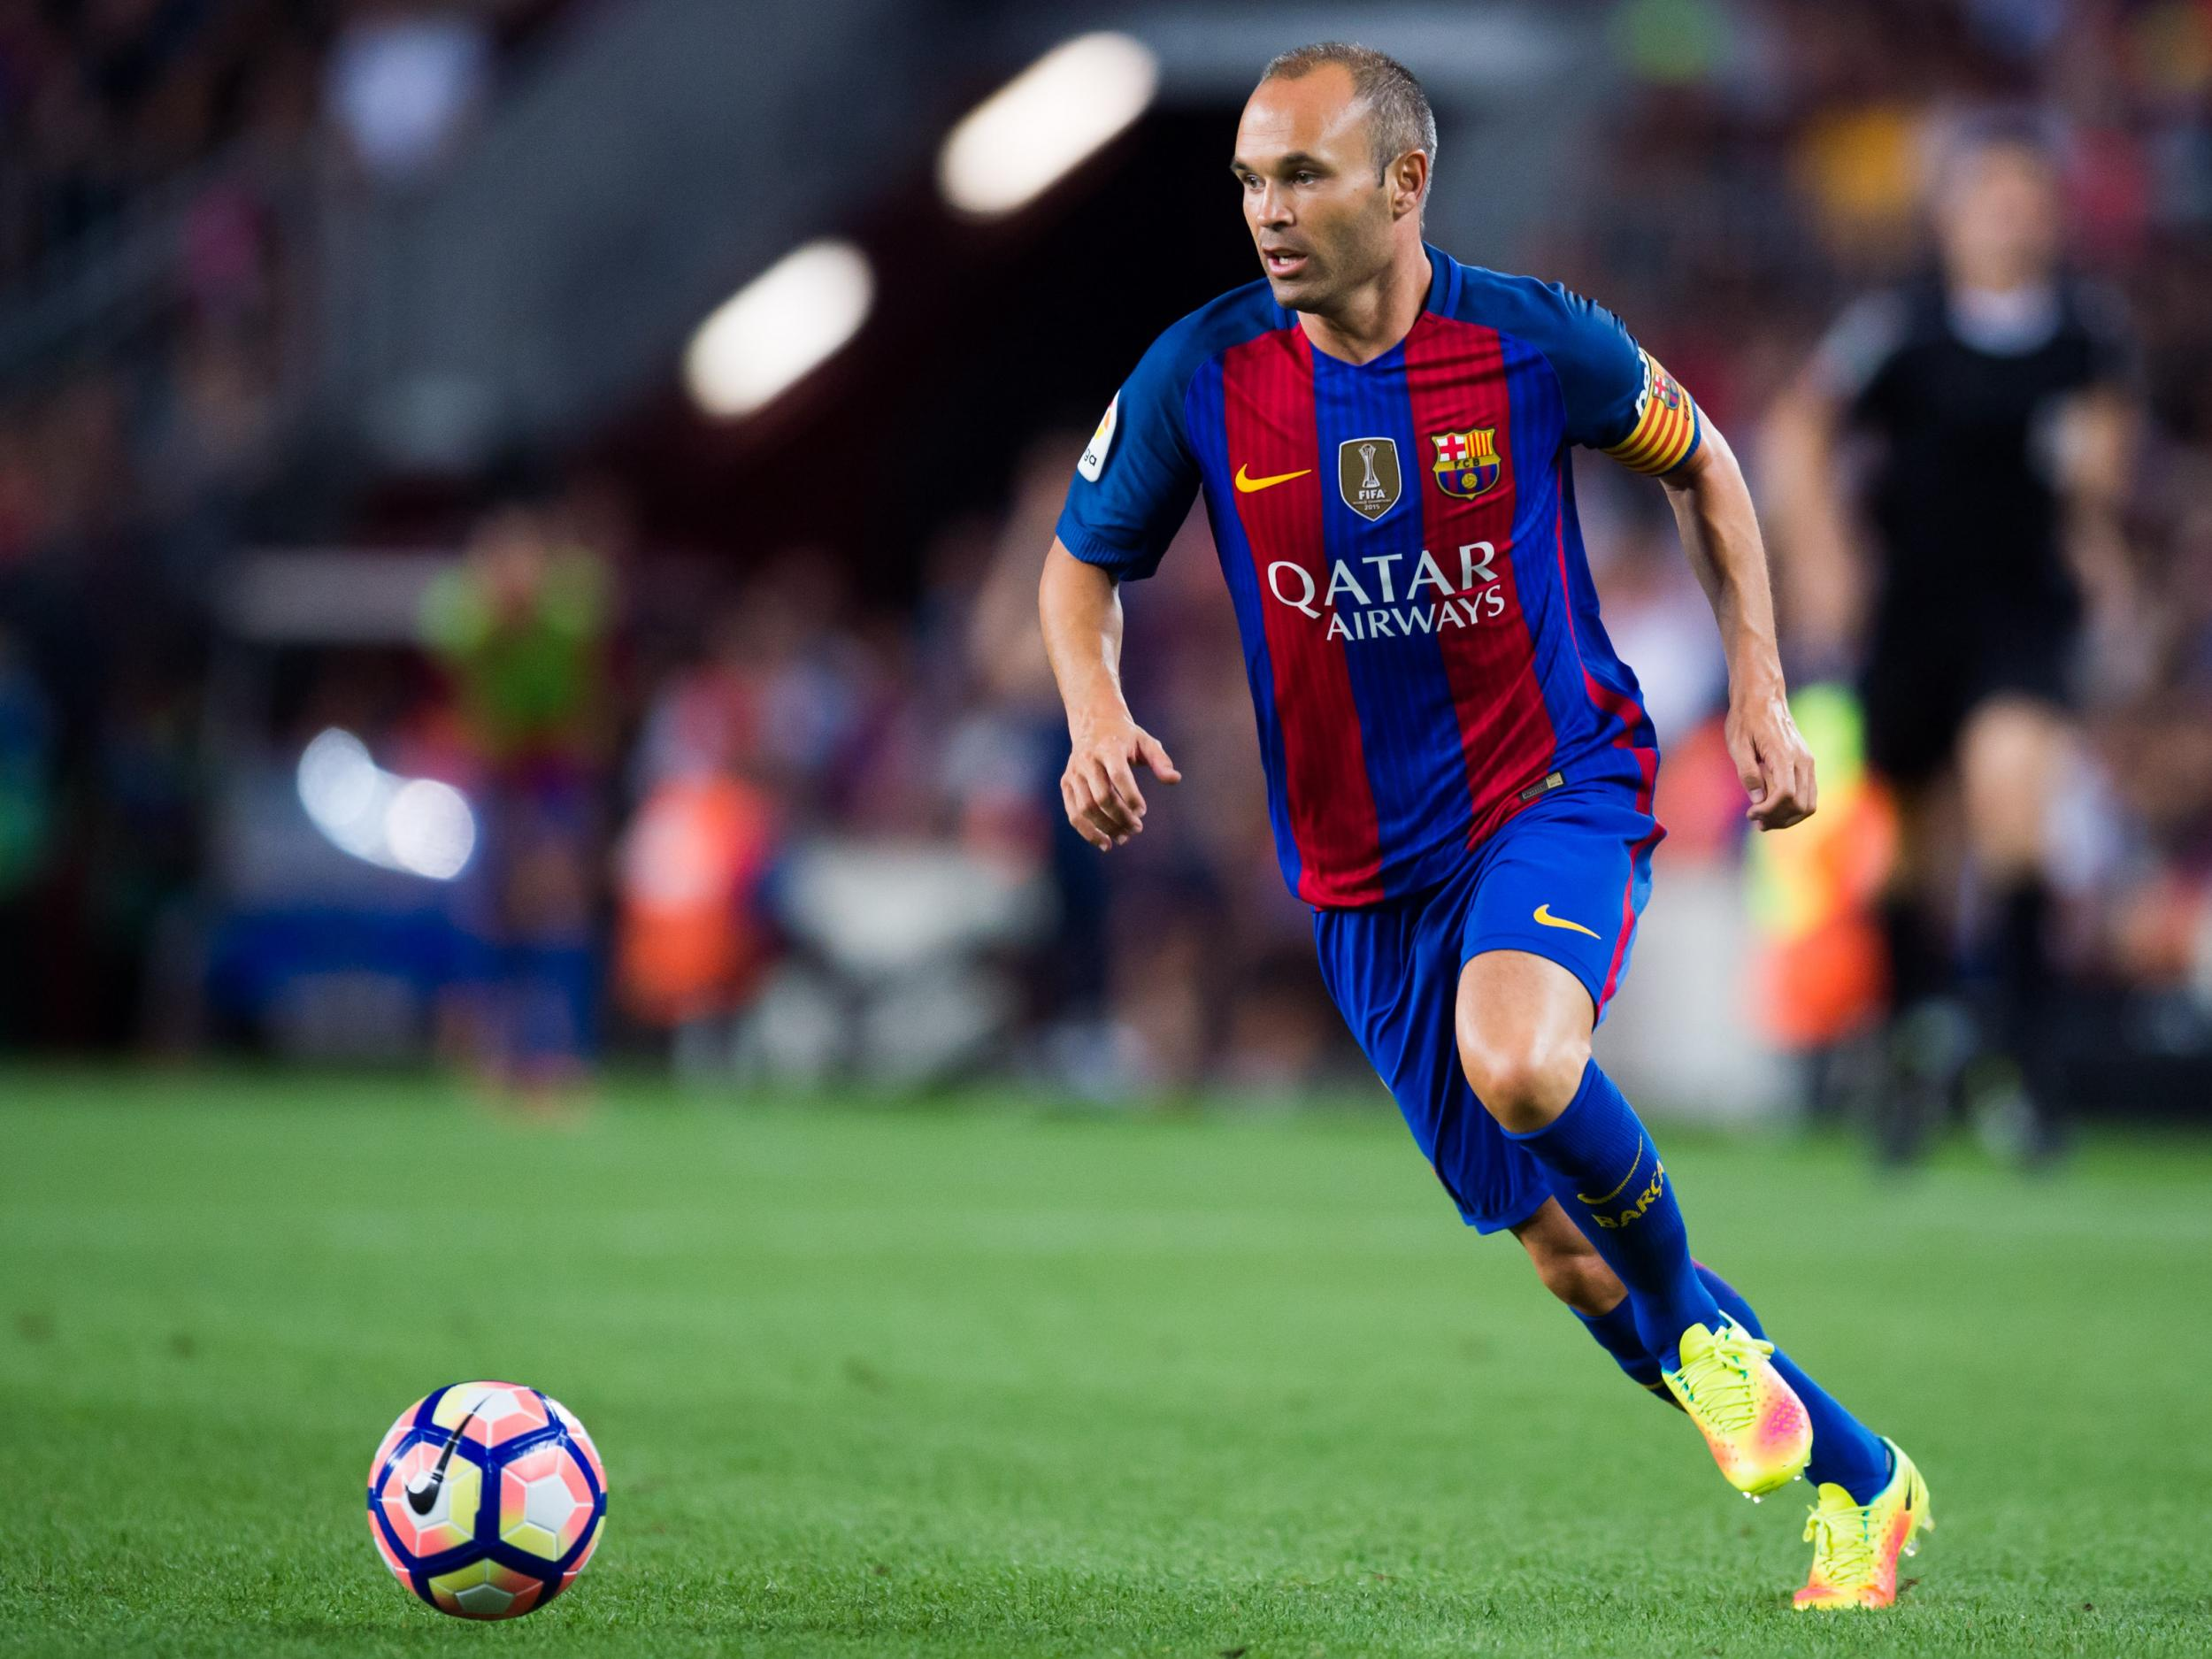 Fascinating Lionel Messi Haus Best Choice Of Barcelona Captain Andres Iniesta On Facing Real